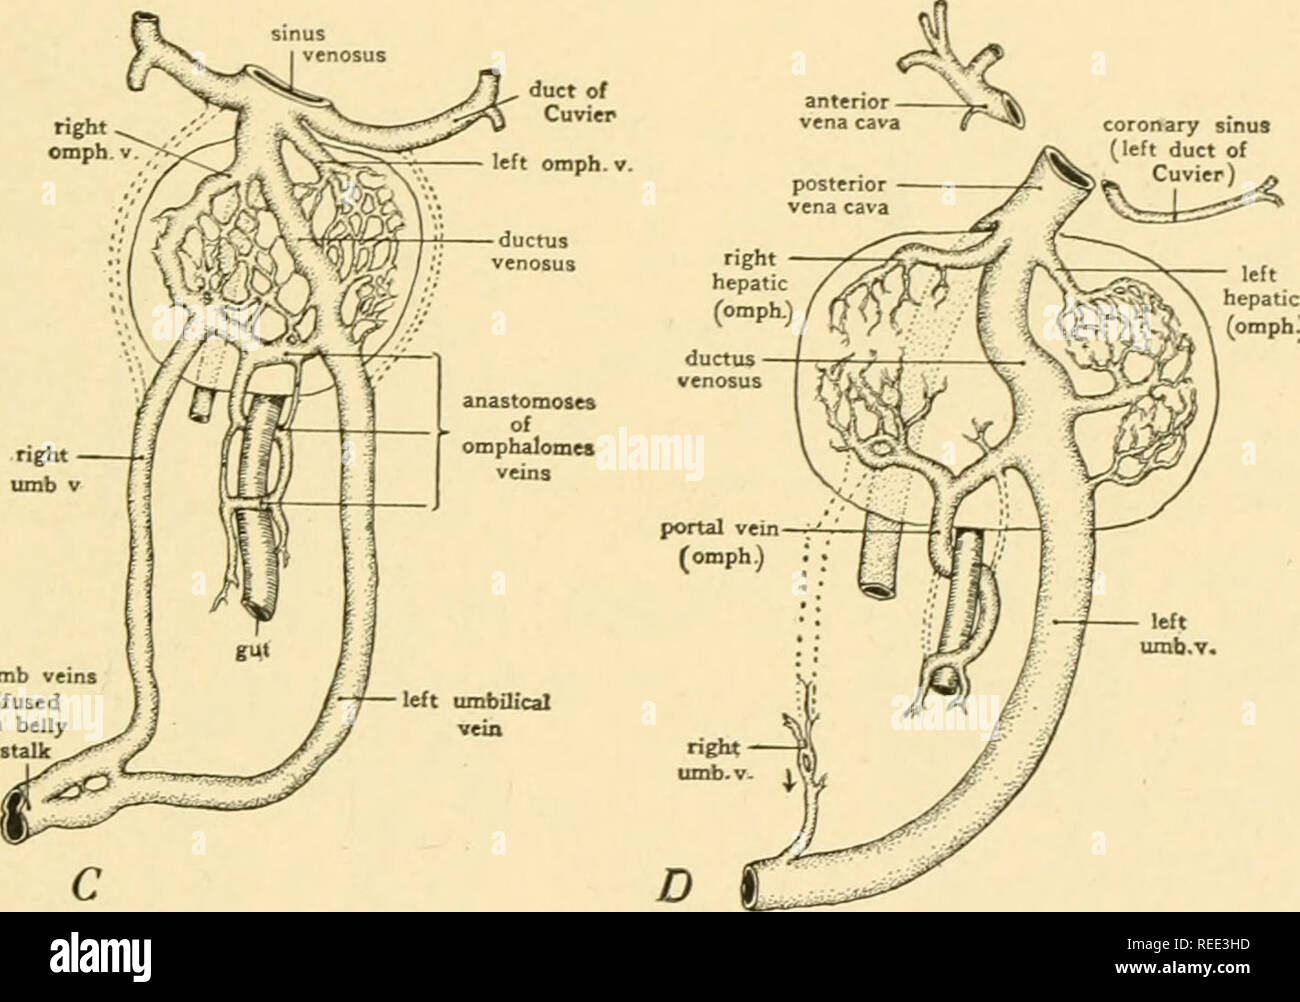 hight resolution of diagrams showing the development of the hepatic portal circulation from the omphalomesenteric veins and the relations of the umbilical veins to the liver